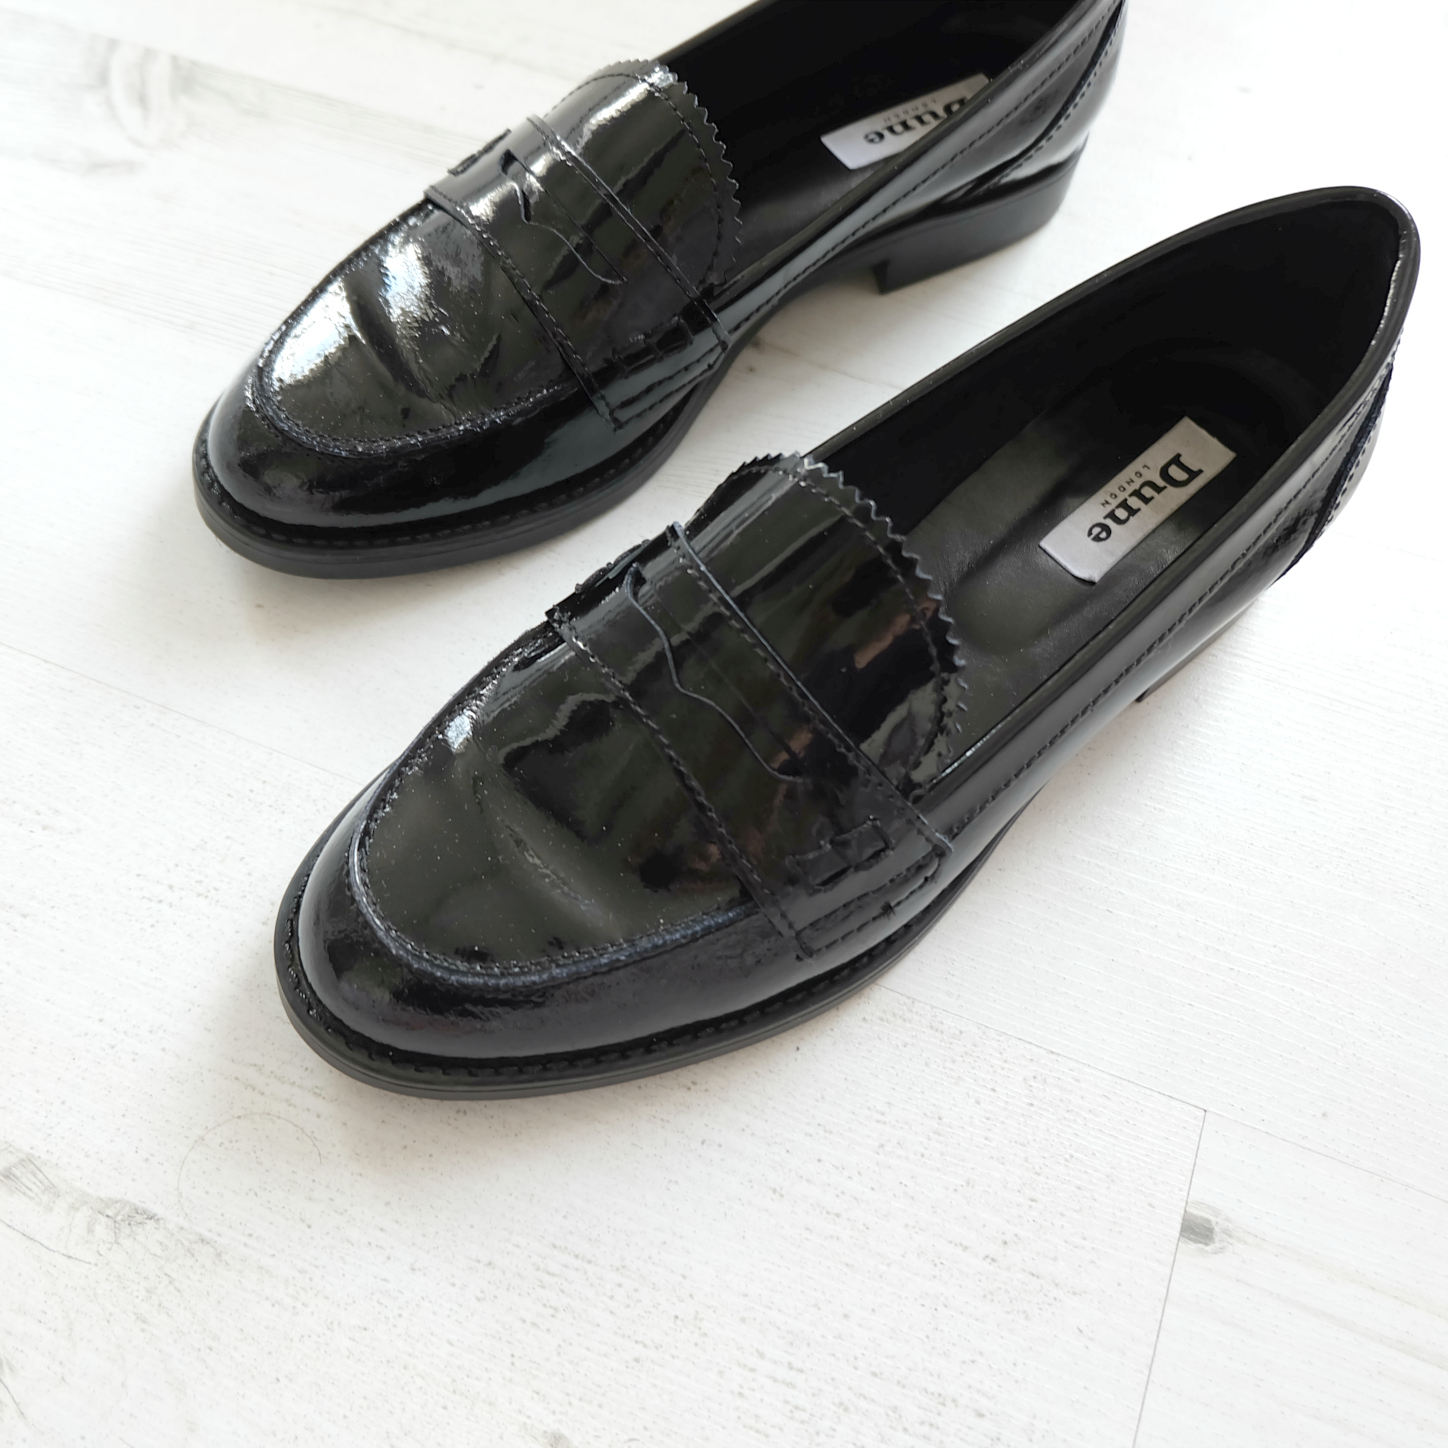 Dune Lexus Loafer black patent leather